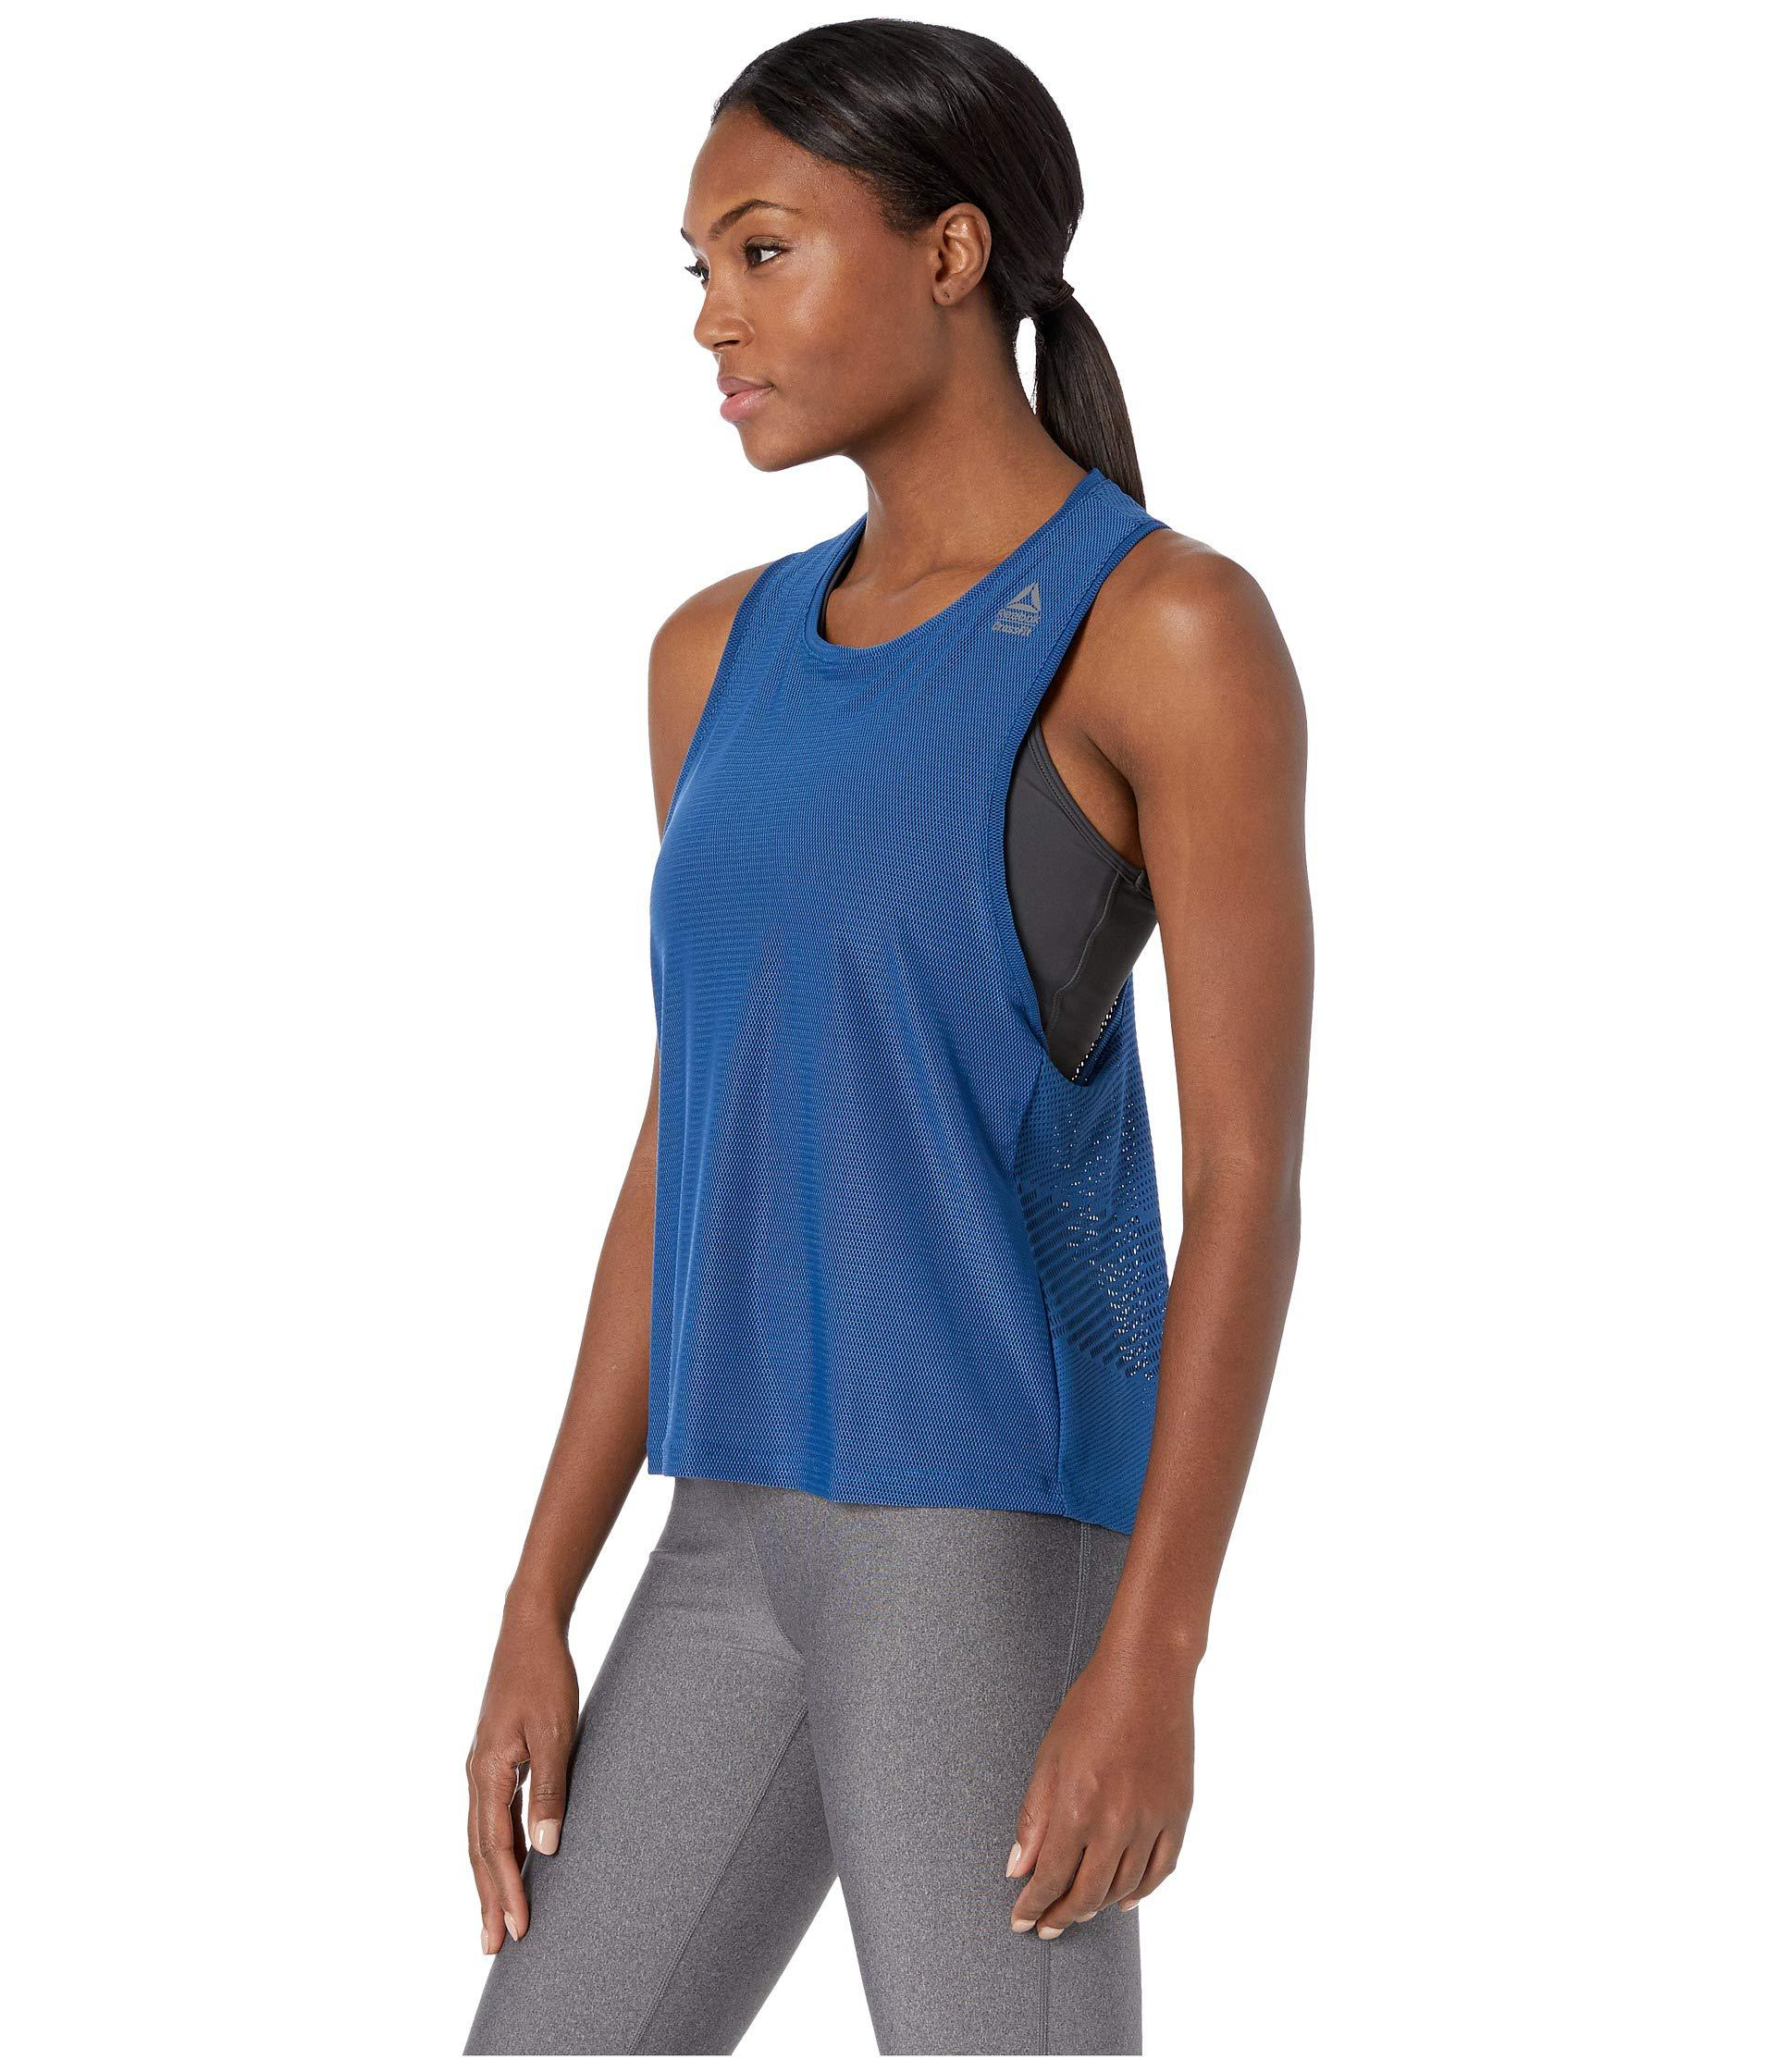 d0a5622dcf Lyst - Reebok Crossfit Jacquard Tank Top in Blue - Save 28%